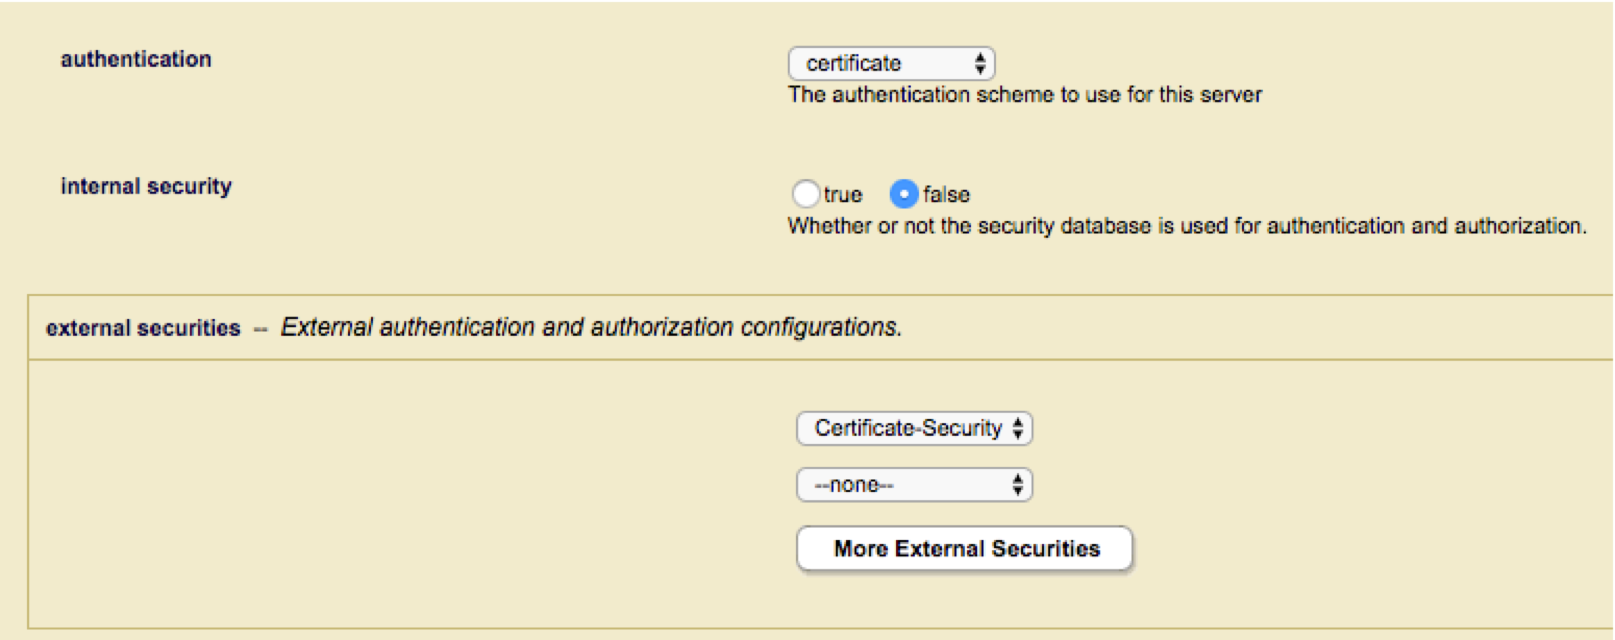 Marklogic Certificate Based Authentication With Ldap Authorization Database Security And Enable Tls Client Configure The Ssl Authorities That You Will Accept To Sign User Certificates